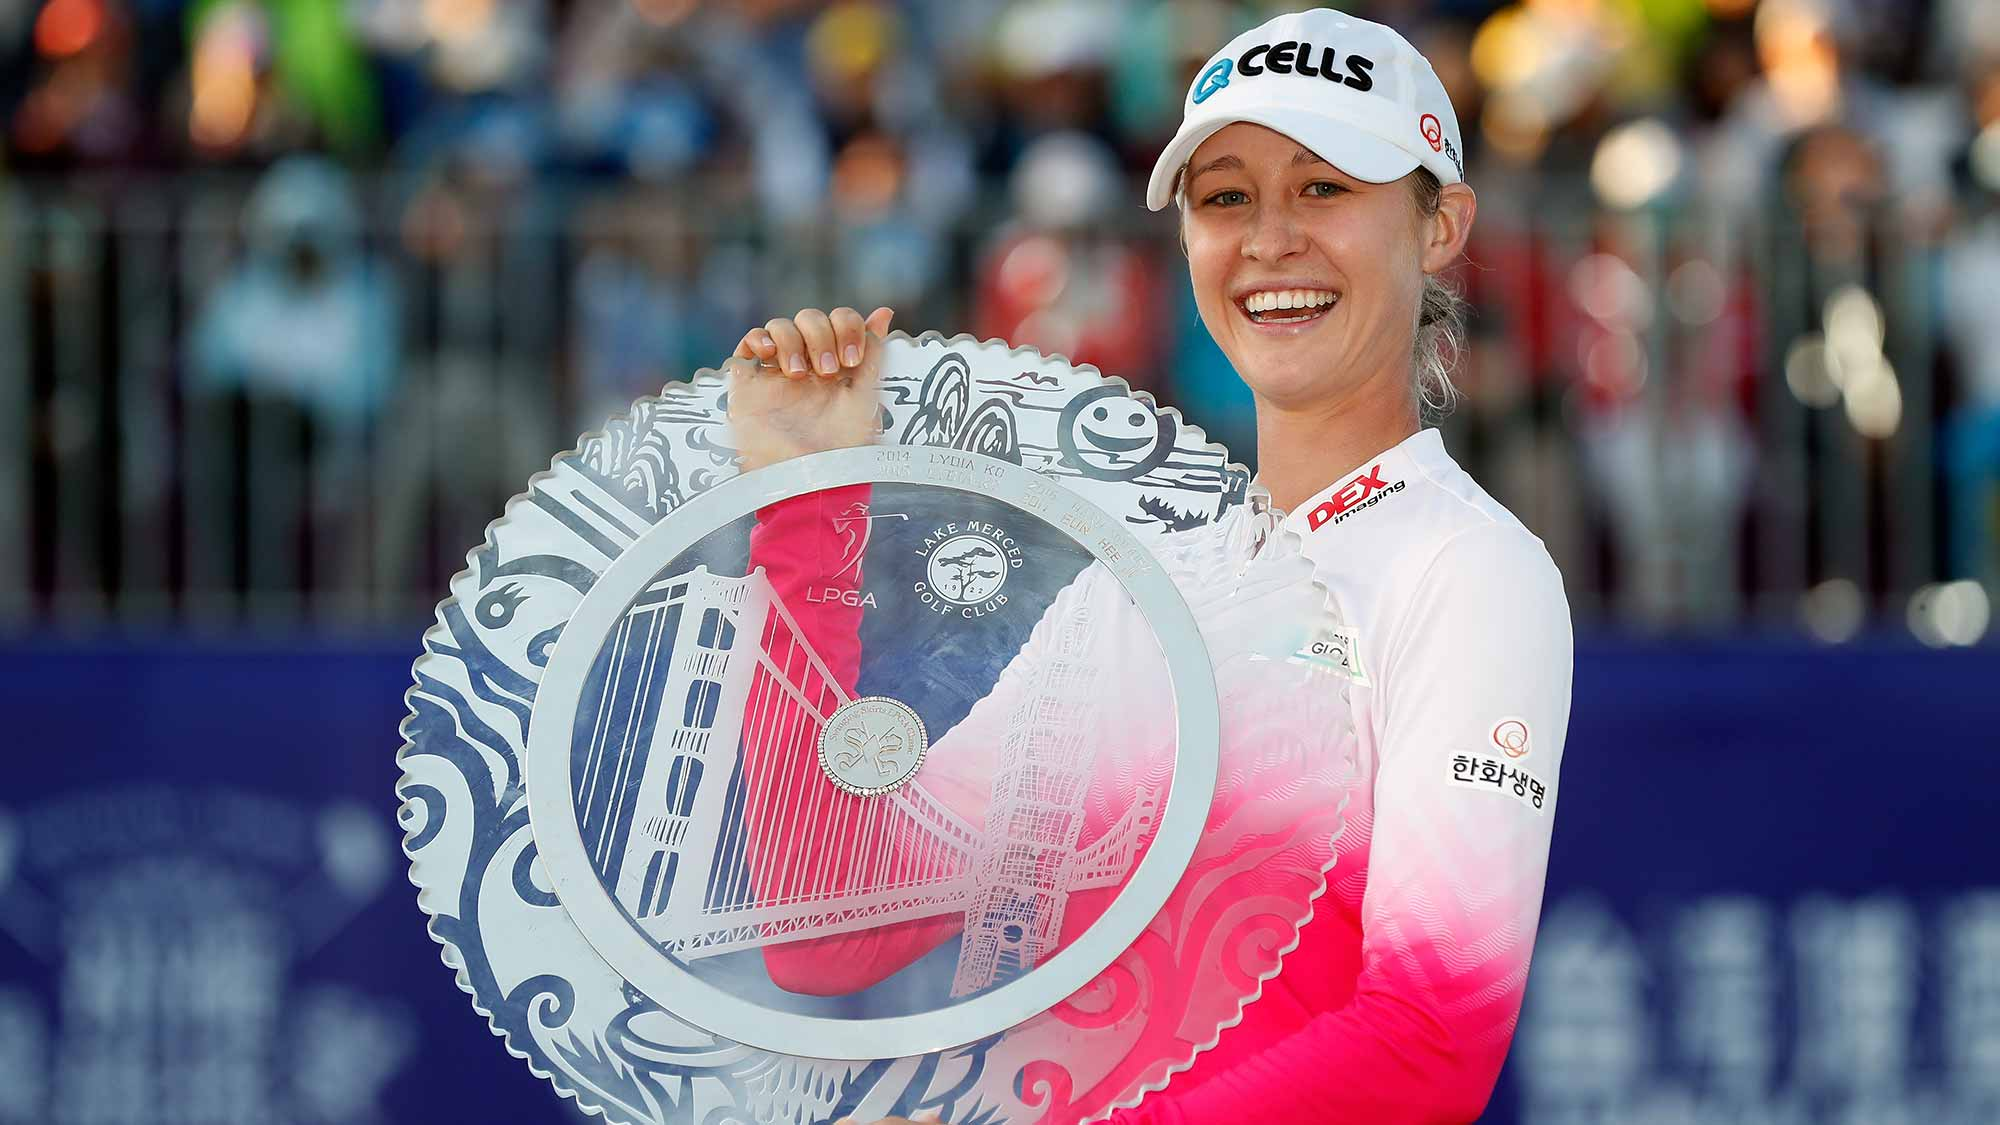 Nelly Korda poses with her trophy on the 18th green after winning the Swinging Skirts LPGA Taiwan Championship at Ta Shee Golf & Country Club on October 28, 2018 in Taoyuan, Chinese Taipei